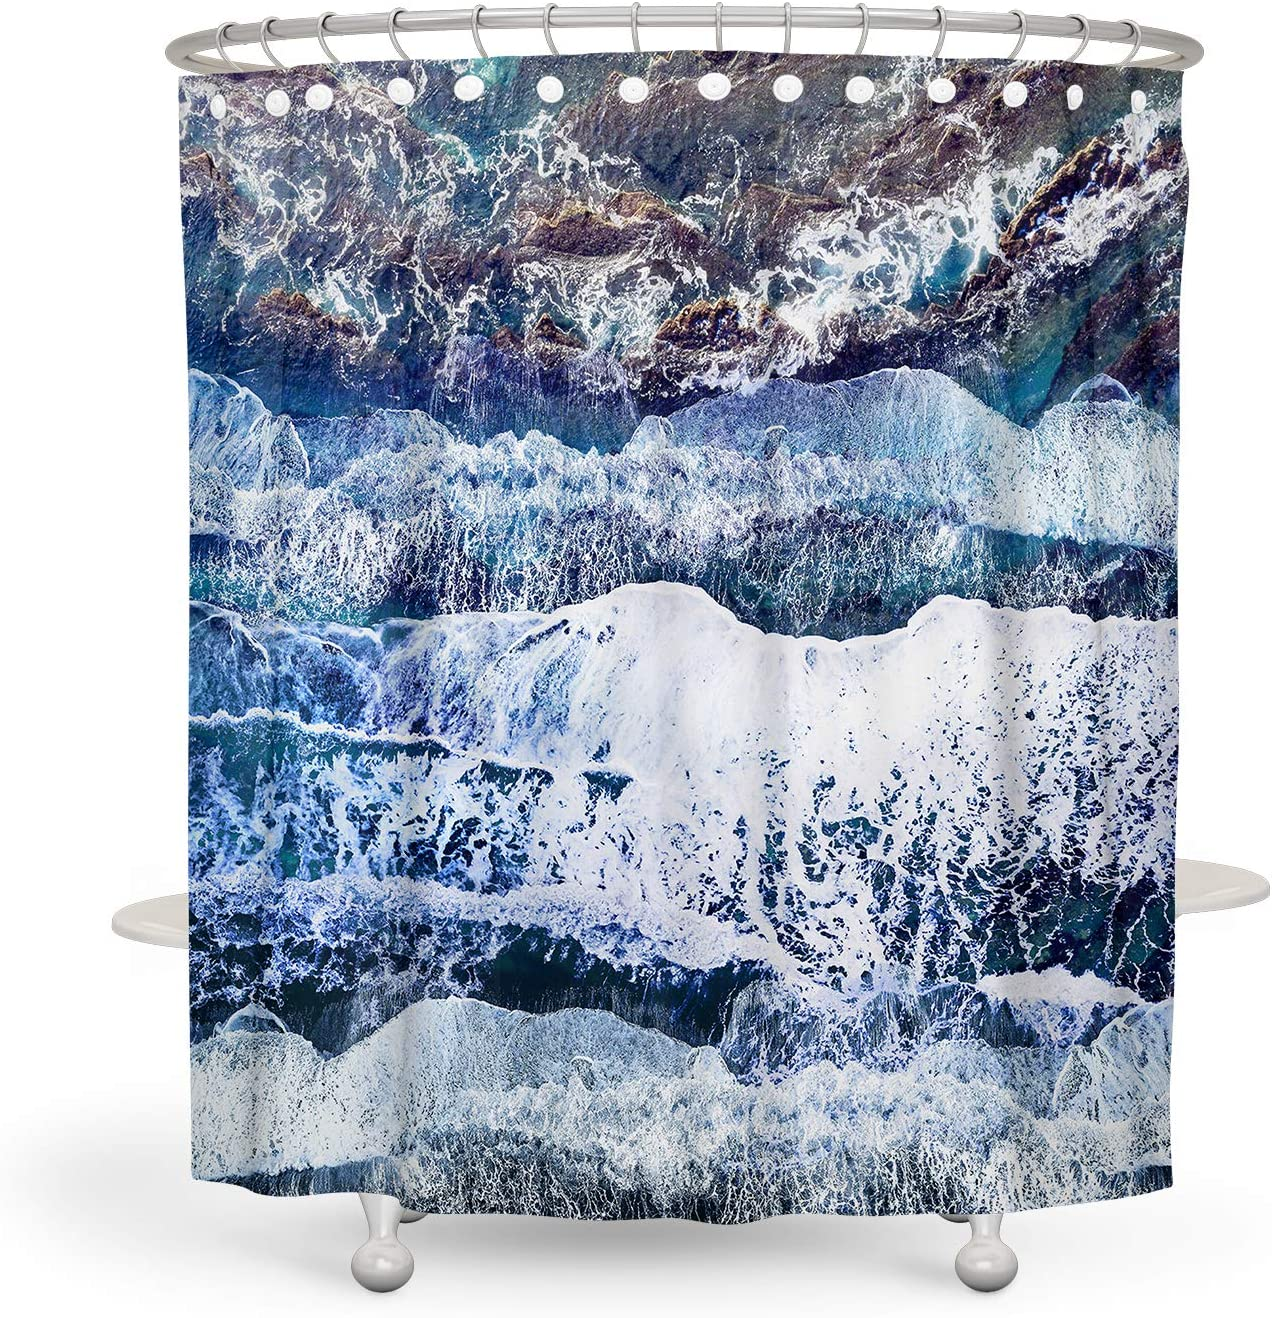 Cherry Blossom Shower Curtain Blue Flower Shower Curtain Japanese Decor Cute Shower Curtain Polyester Waterproof Shower Curtain 72x72 Inch BARGHE Floral Shower Curtain